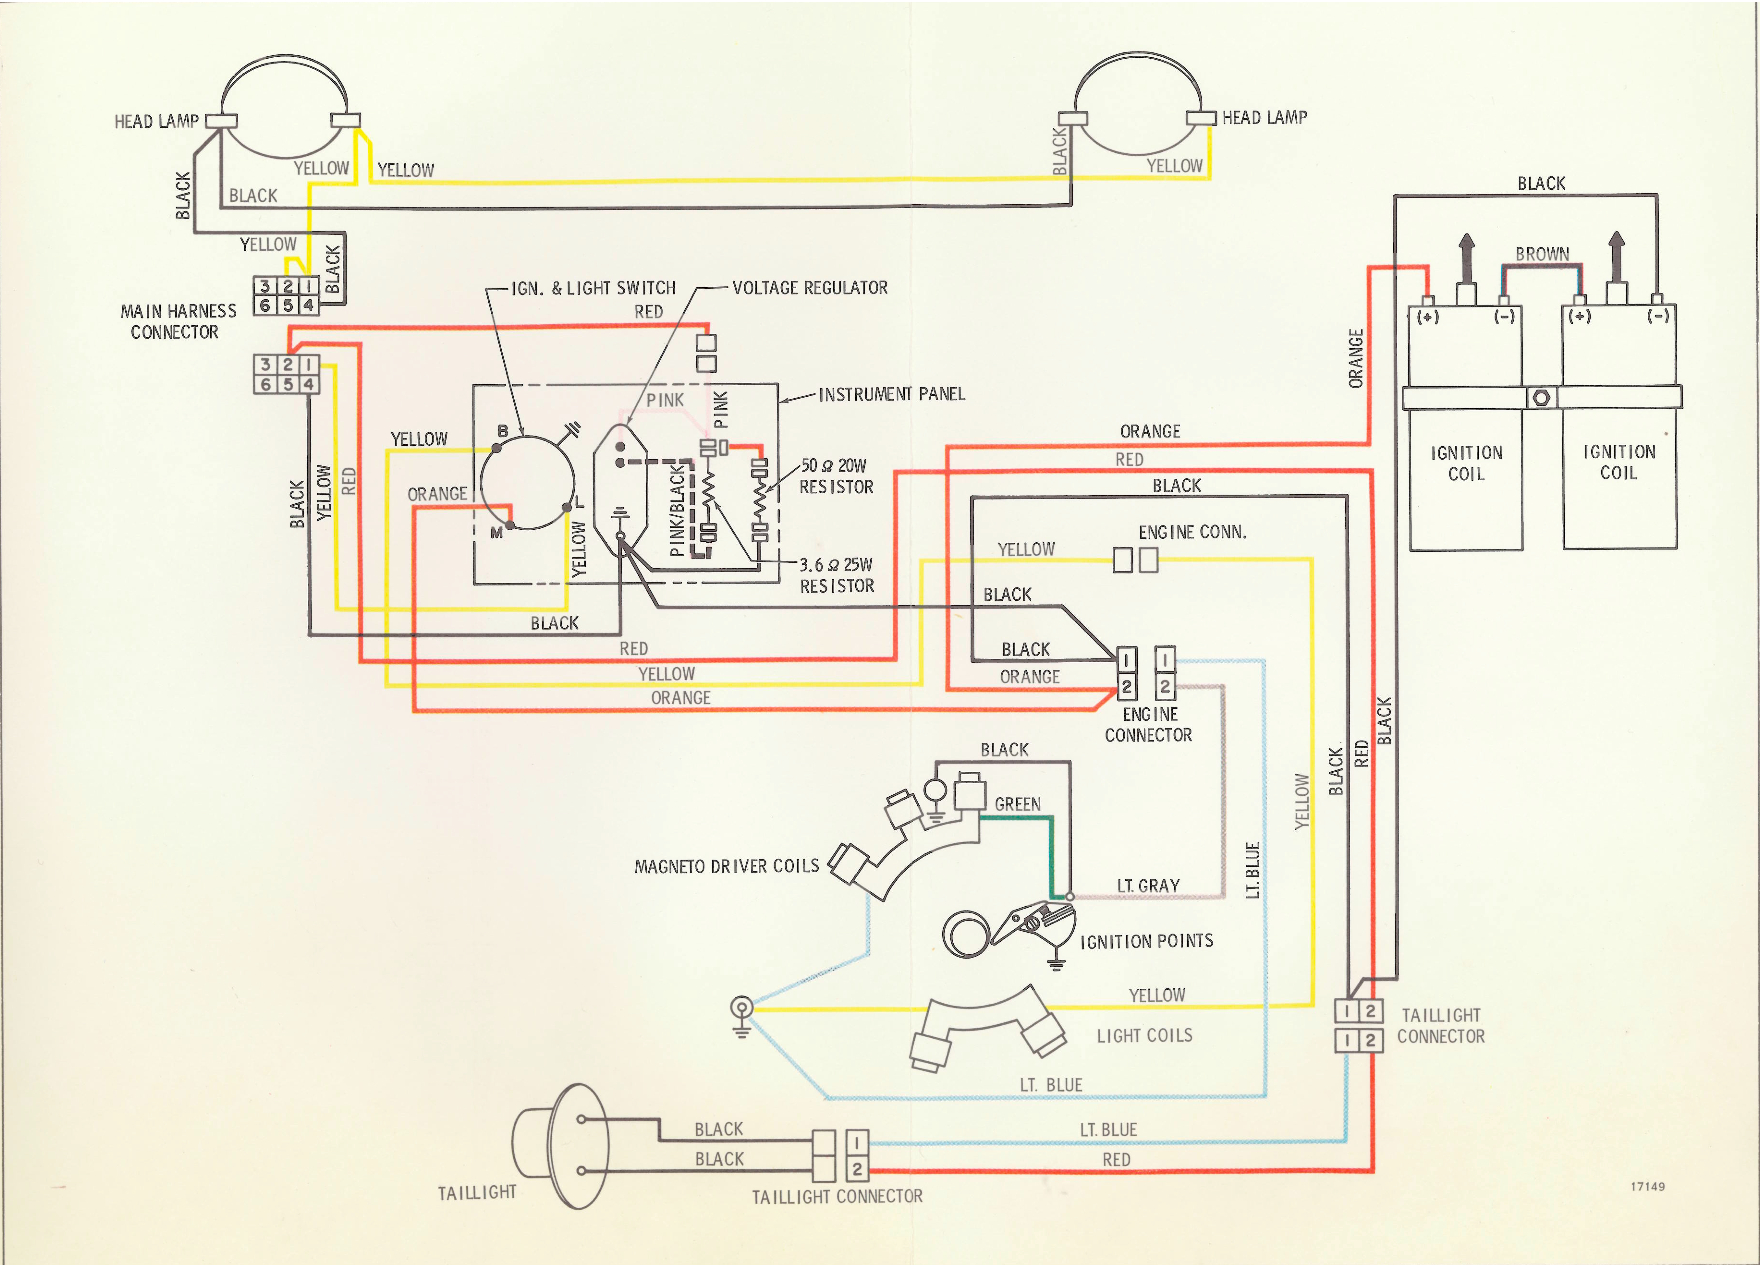 New Holland Skid Steer Parts Diagram Skid Steer Hydraulic Schematic Wiring Diagram Project